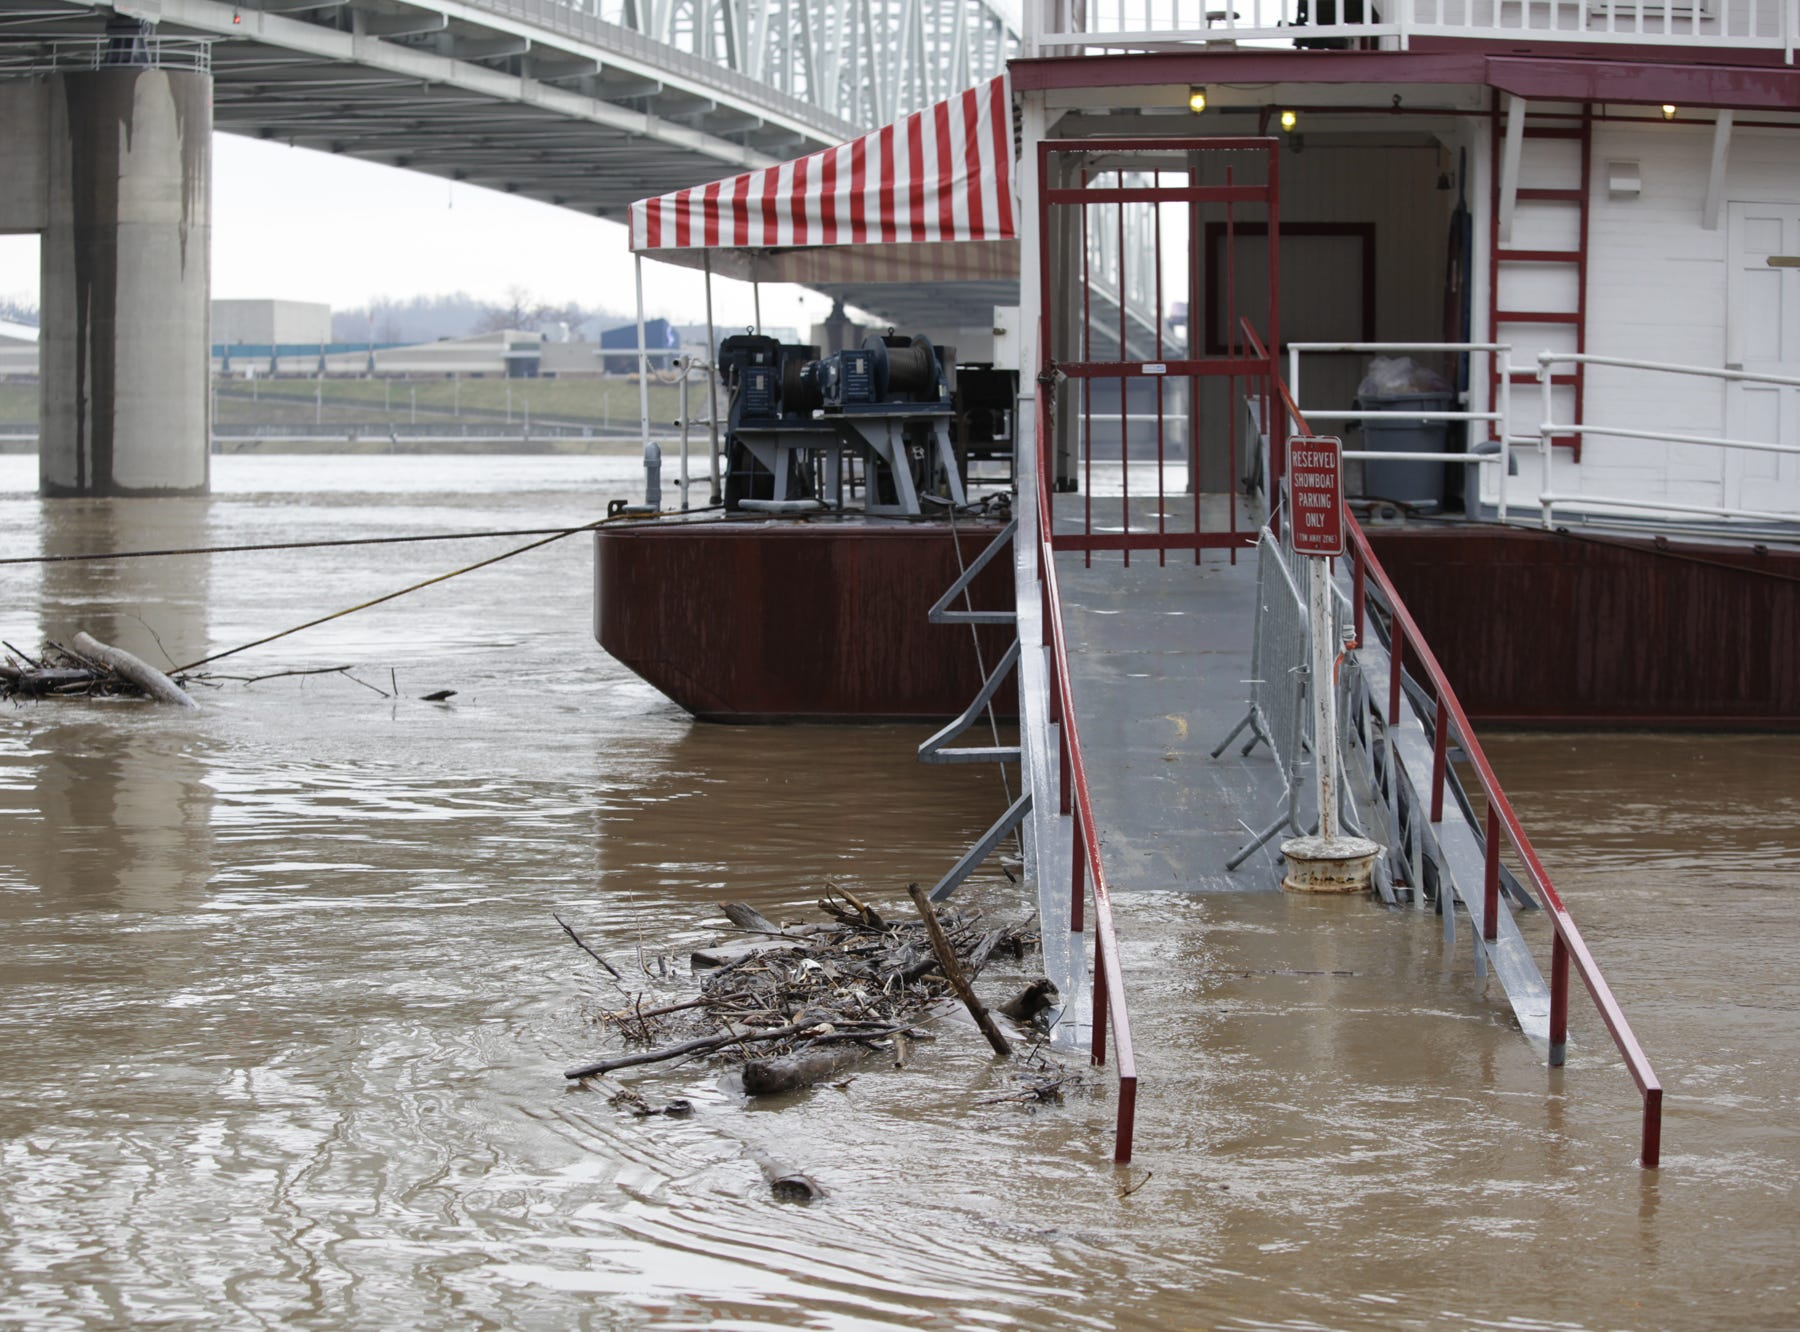 The gangplank to the Showboat Majestic is flooded in 2011.